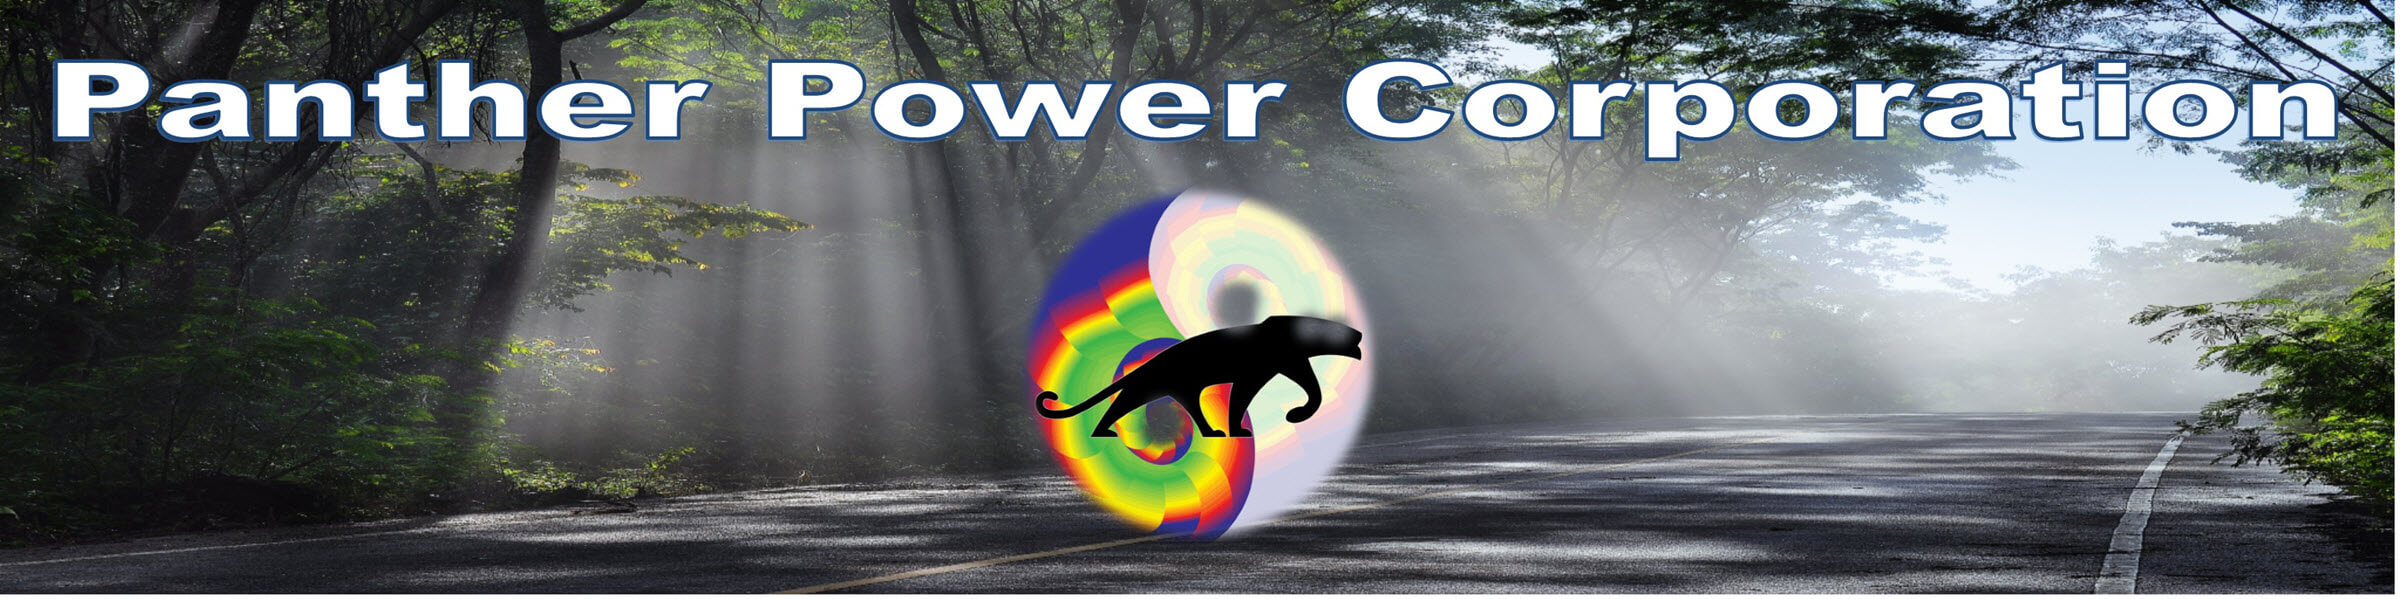 Panther Power Corporation Retina Logo